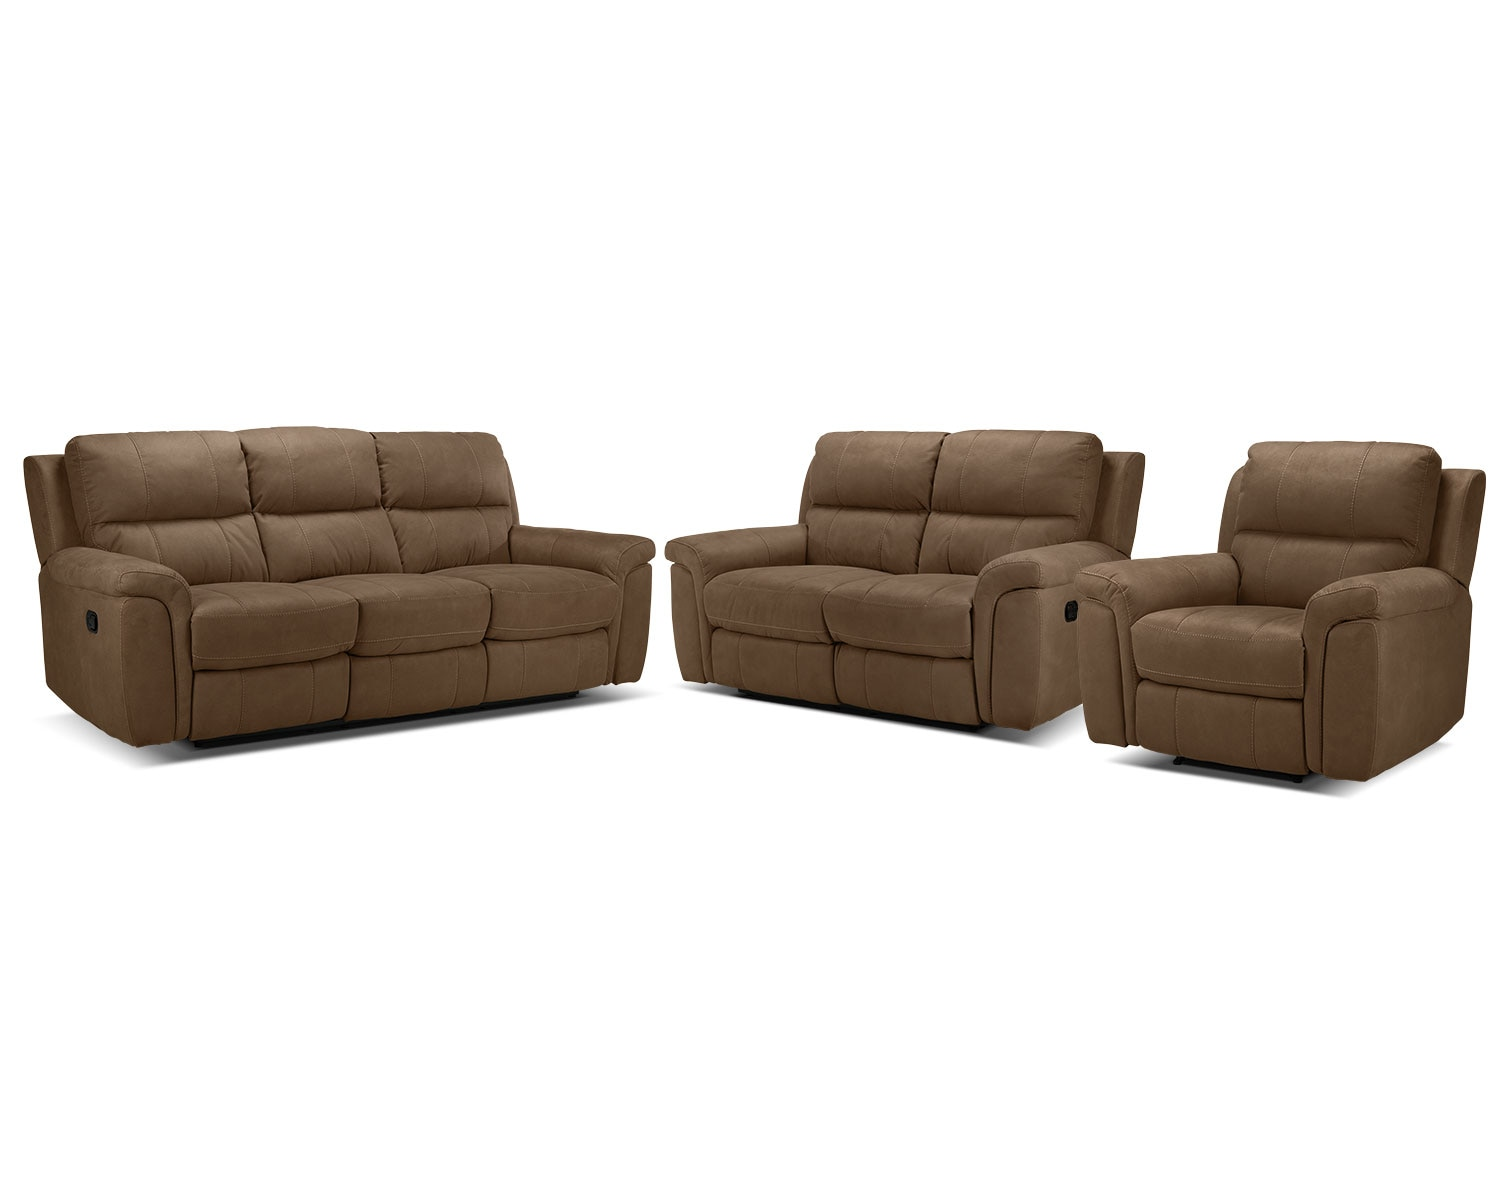 The Roarke Living Room Collection - Tobacco